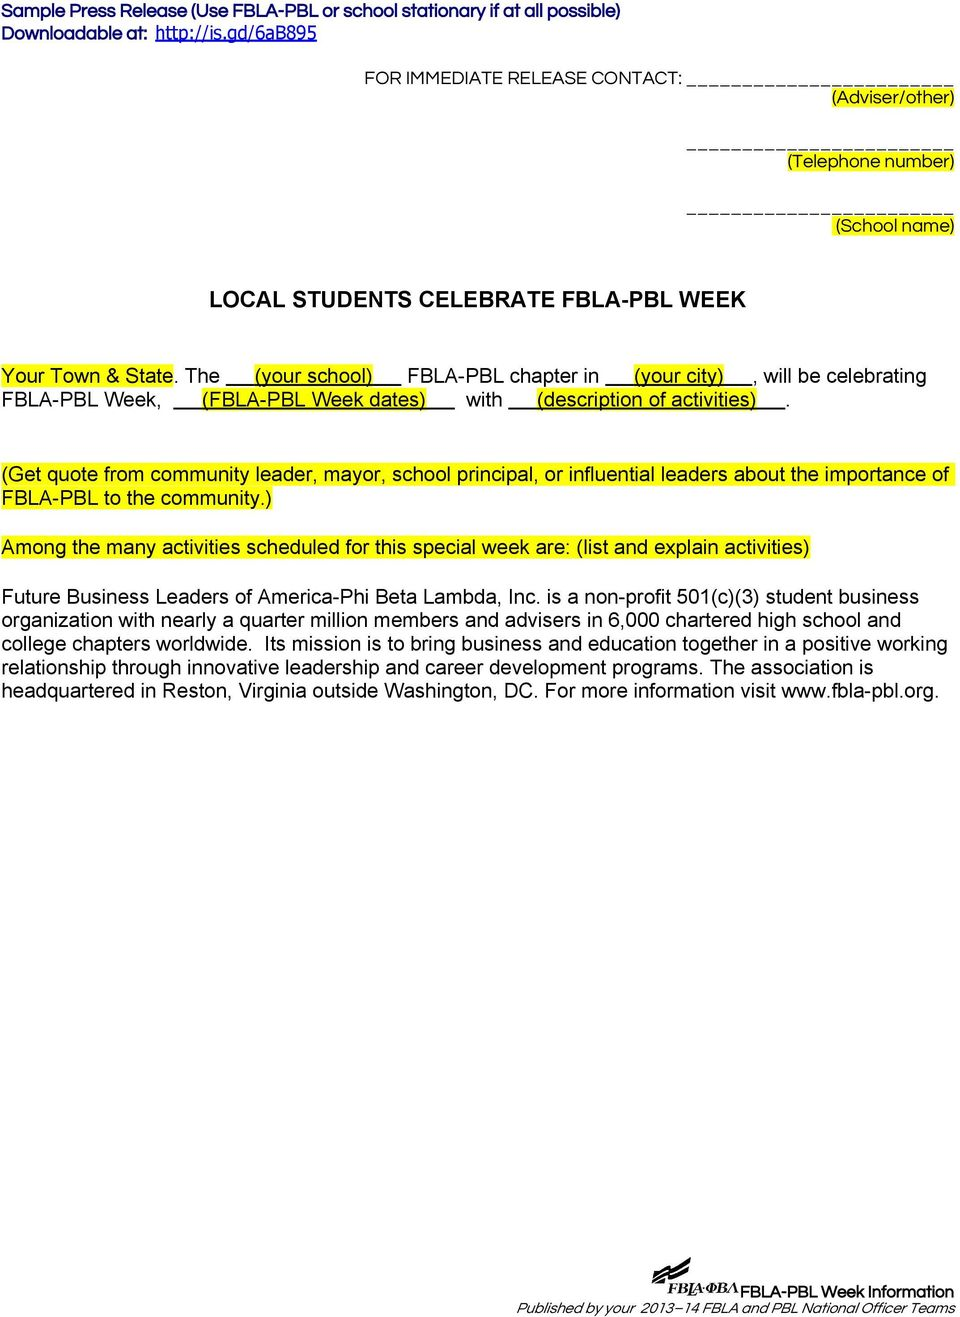 The (your school) FBLA-PBL chapter in (your city), will be celebrating FBLA-PBL Week, (FBLA-PBL Week dates) with (description of activities).